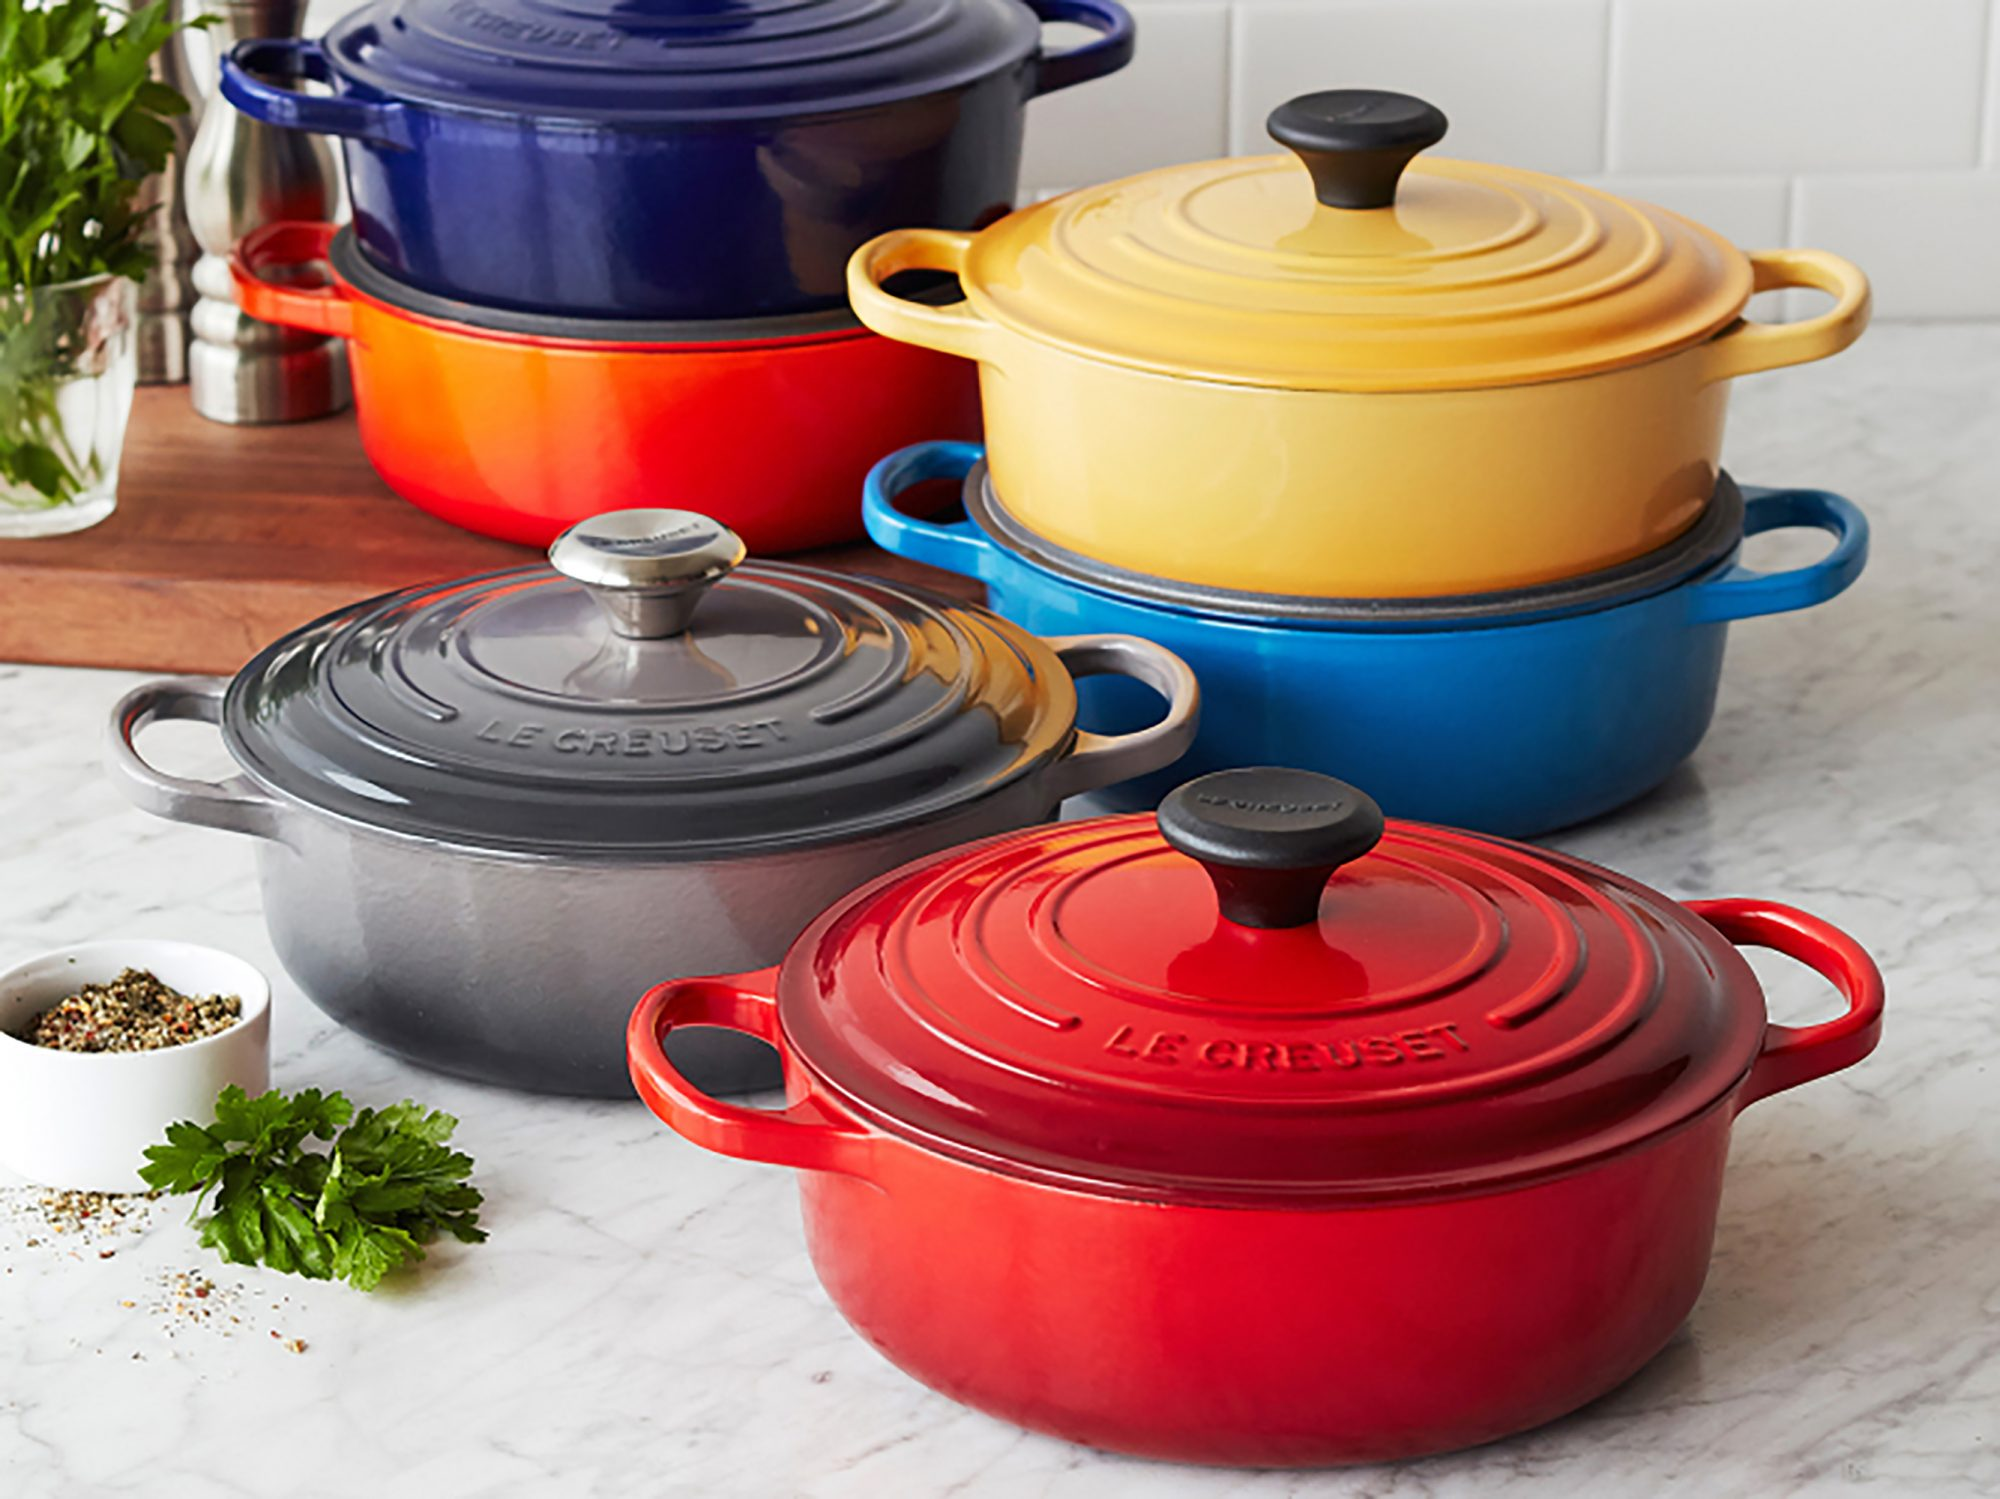 You Can Get a Classic Le Creuset Right Now for Under $200